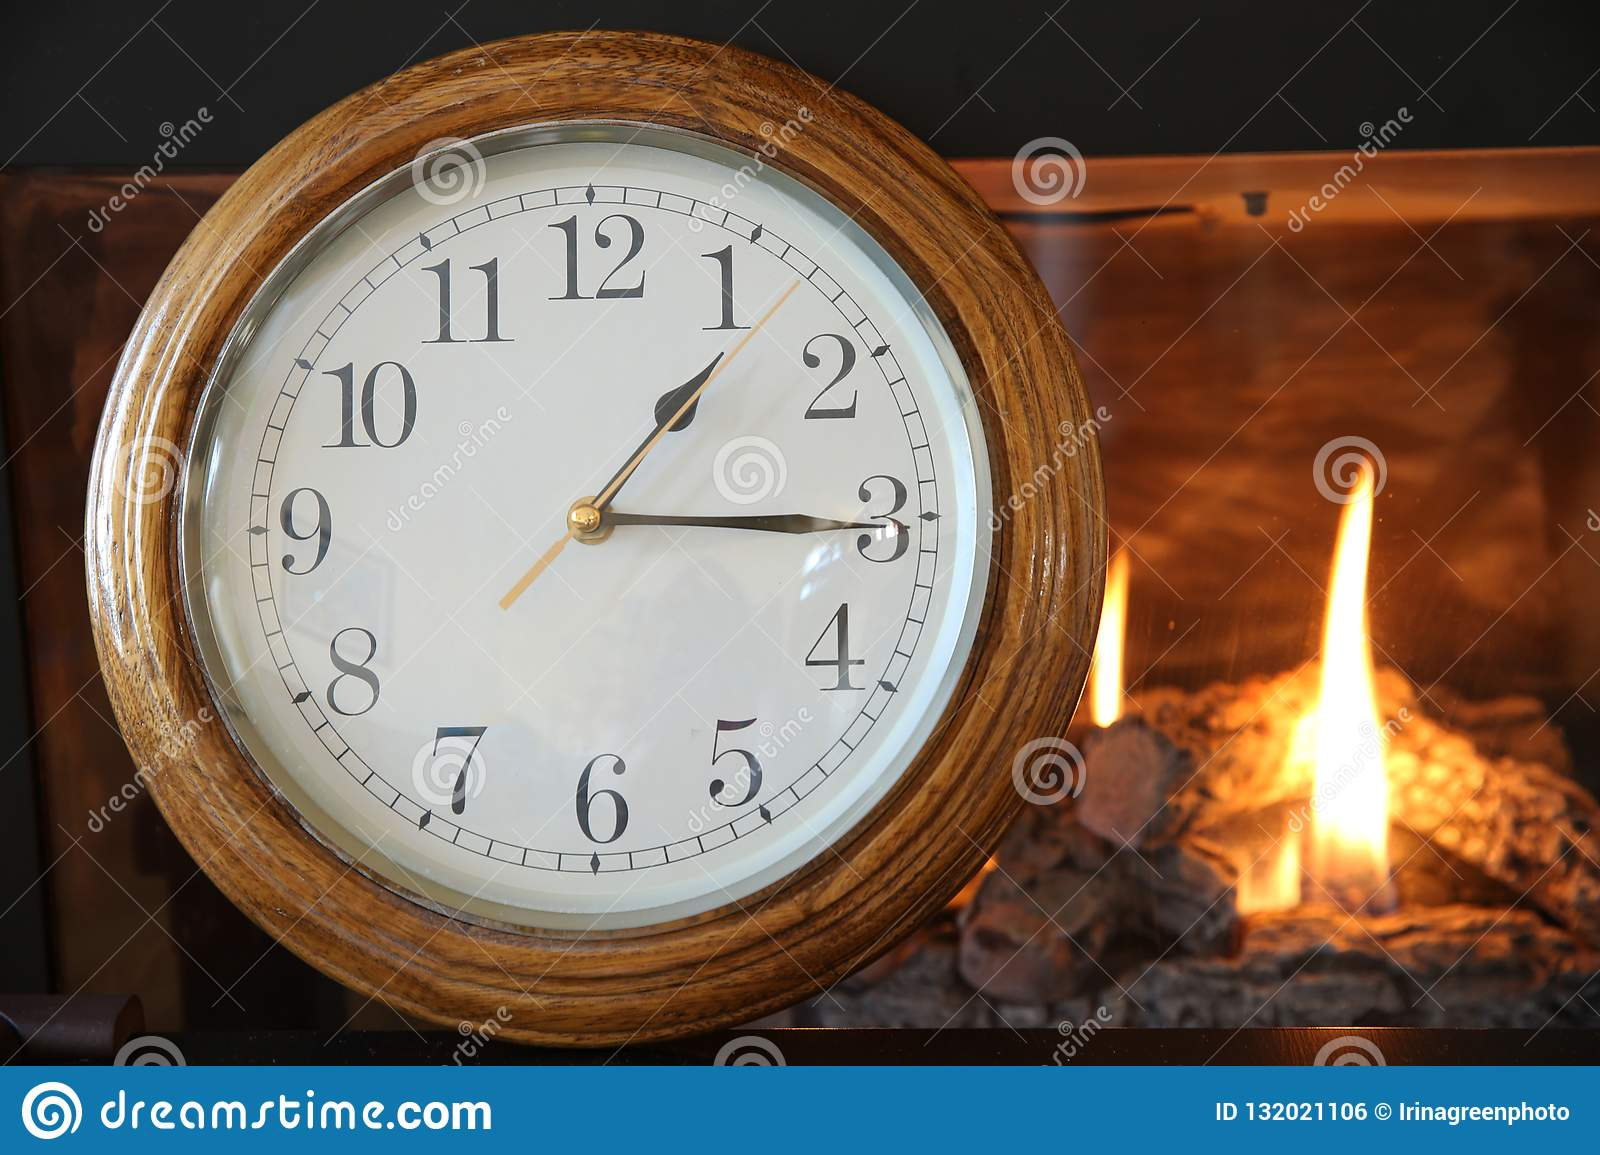 Clock on the background of a burning fire in the fireplace